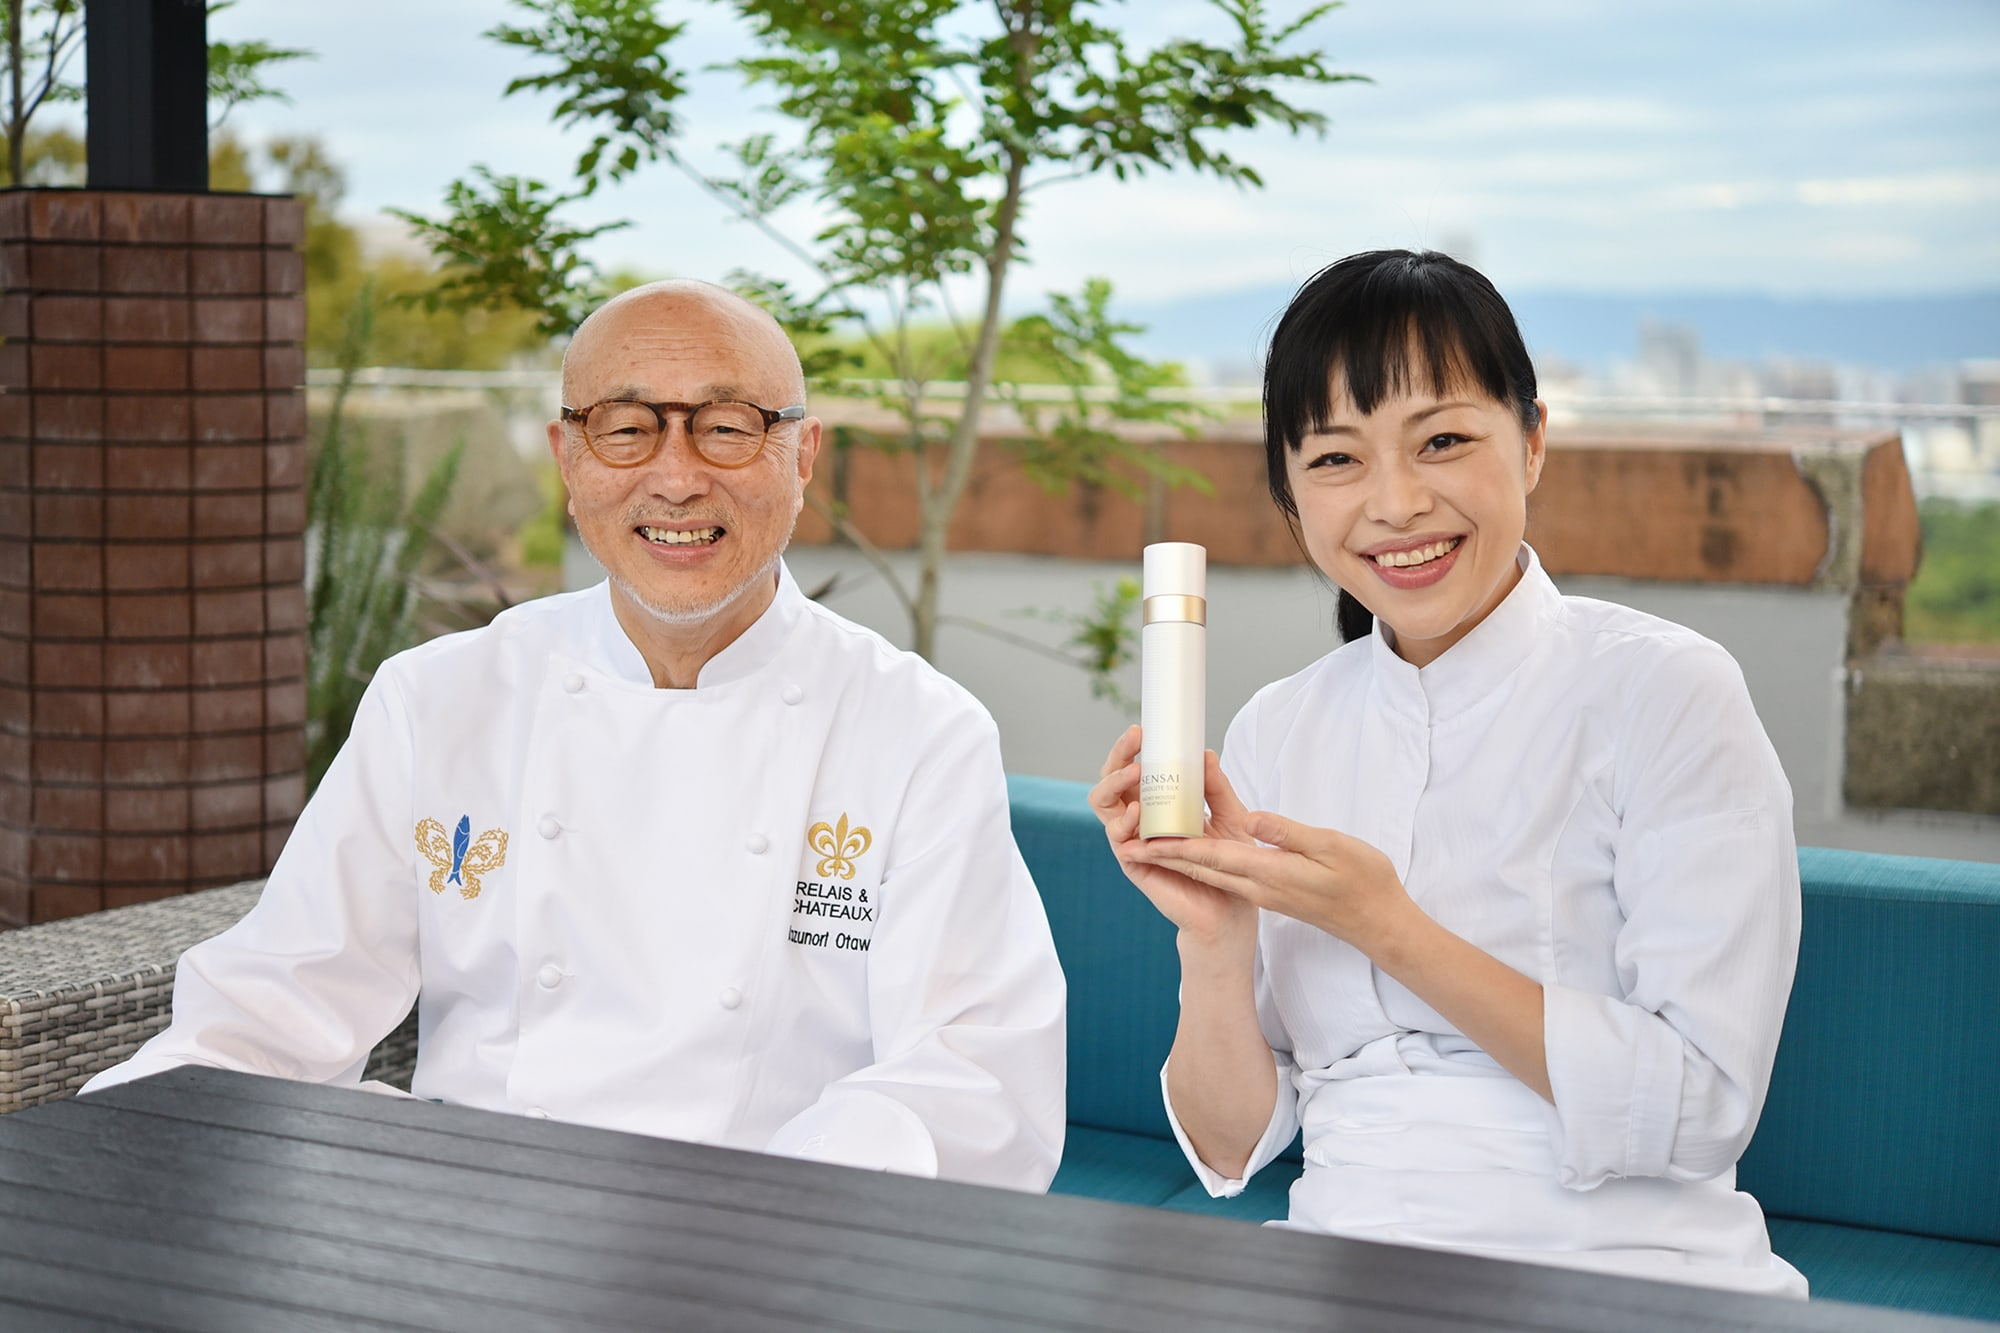 Kazuki Otowa and Asuka Otowa from the Otowa Restaurant. The restaurant is a member of the Relais & Châteaux. The two have created the Oeuf a la Neige SENSAI specially for the Grand Gala Dinner.